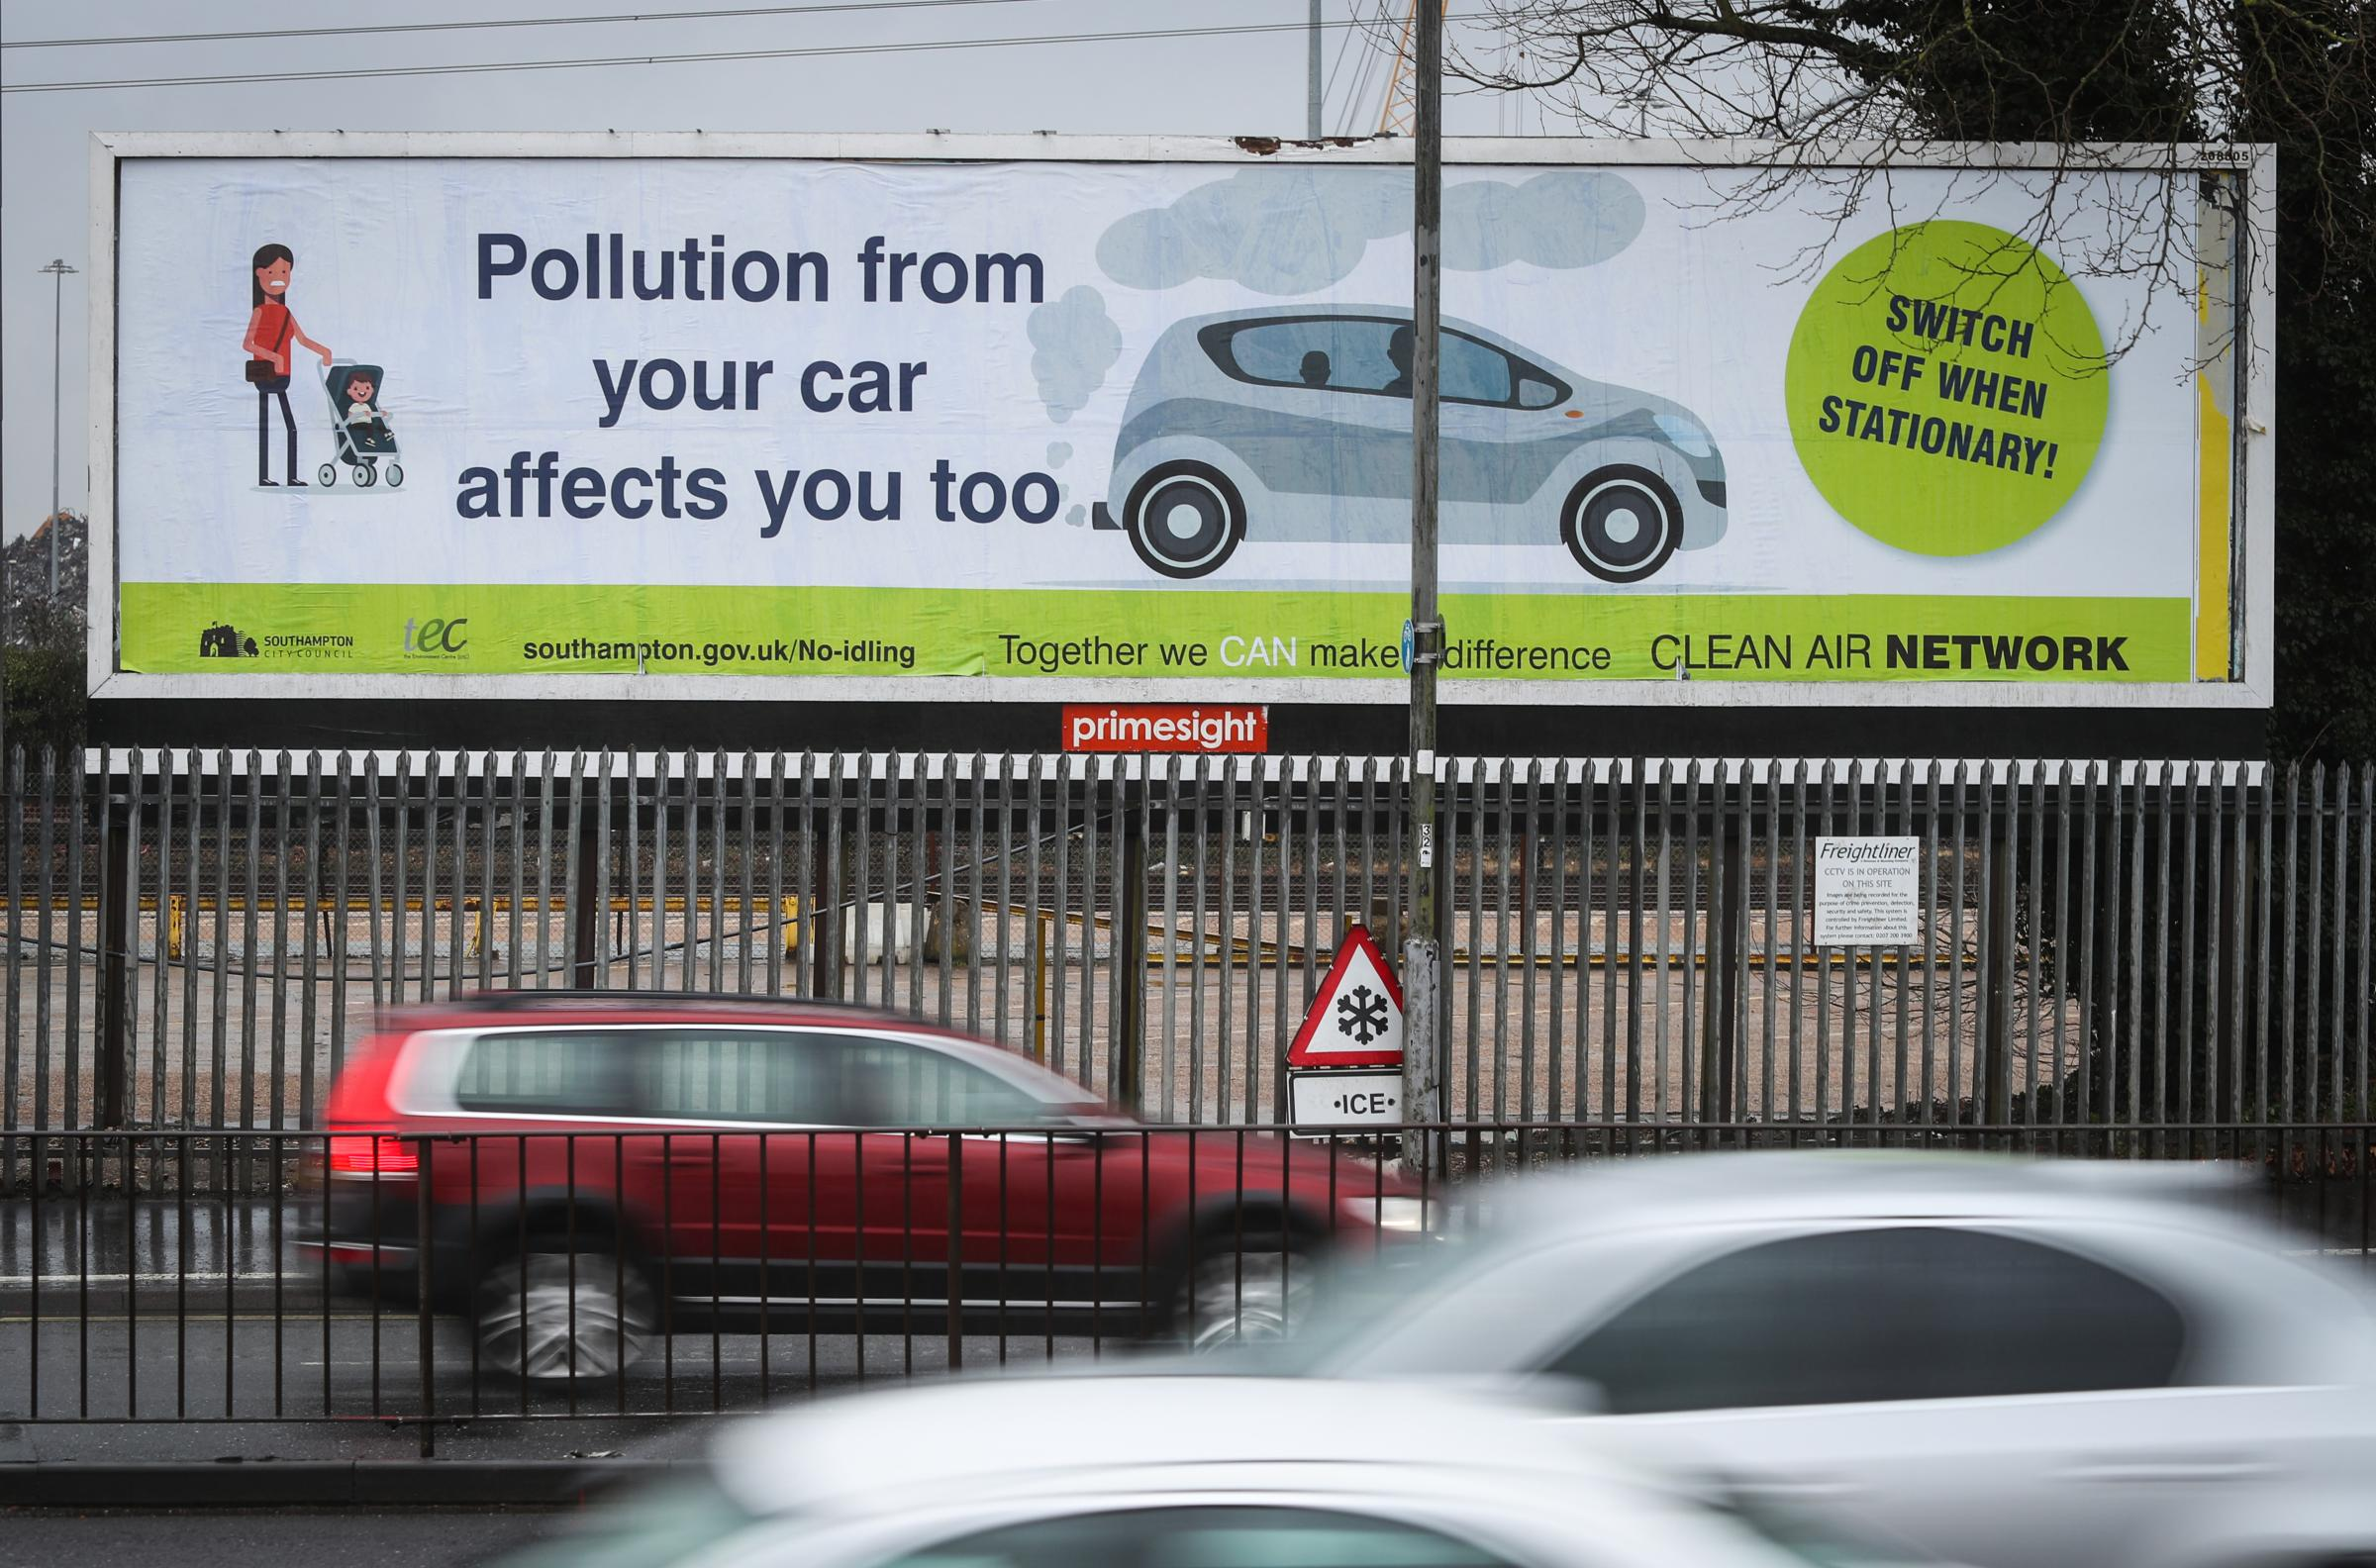 Southampton City Council Pollution poster on Millbrook Road Southampton.